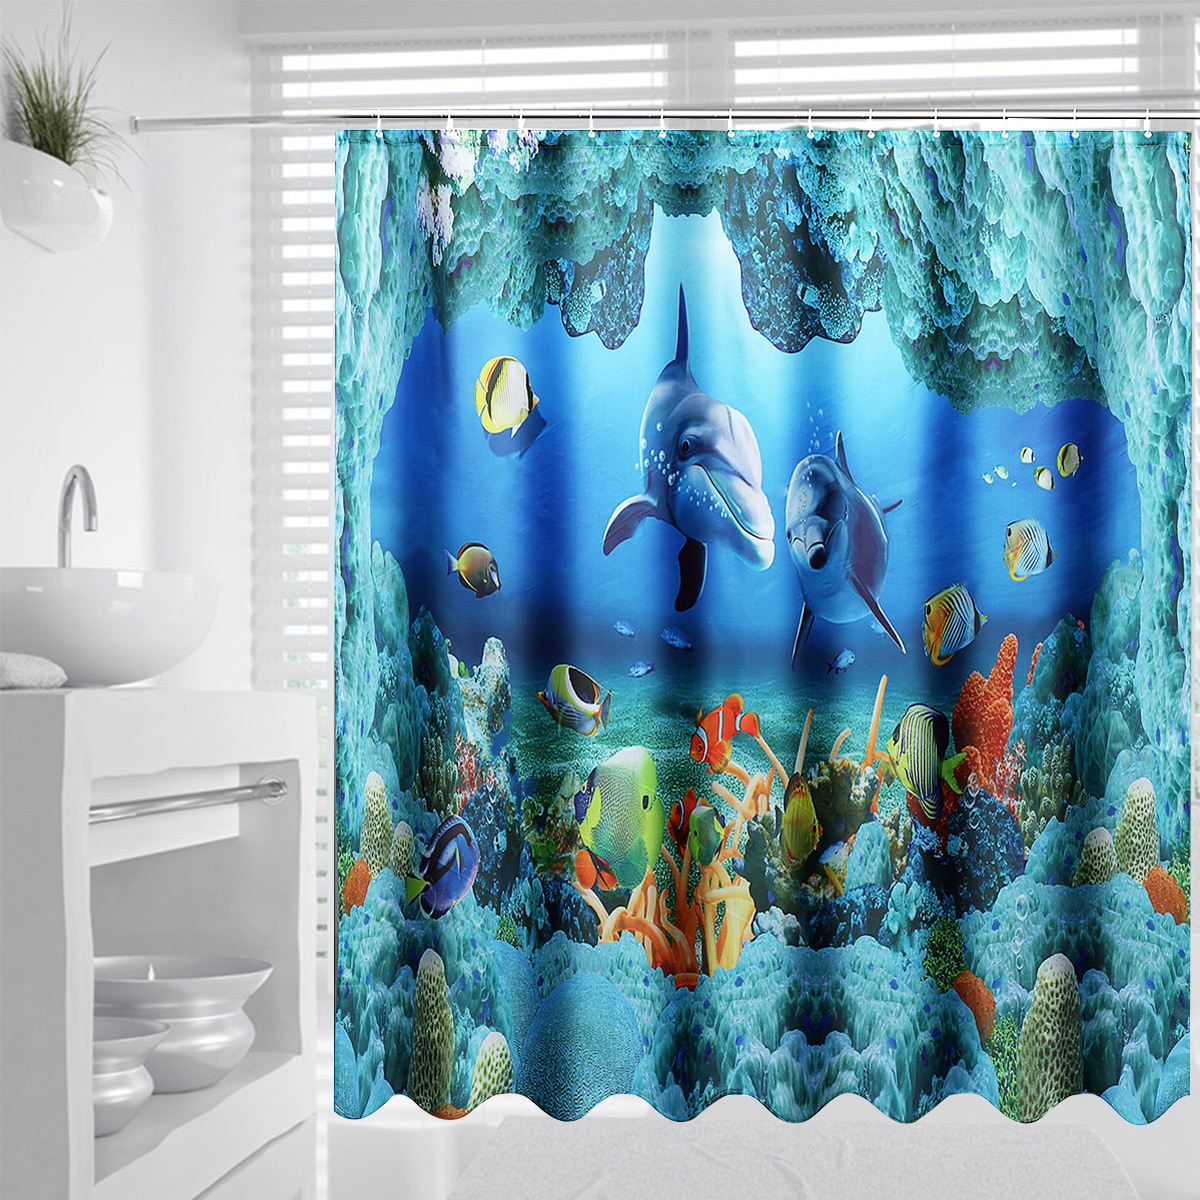 Home & Garden 3d Planets Galaxy 72 Shower Curtain Waterproof Fiber Bathroom Windows Toilet Complete In Specifications Curtains, Drapes & Valances